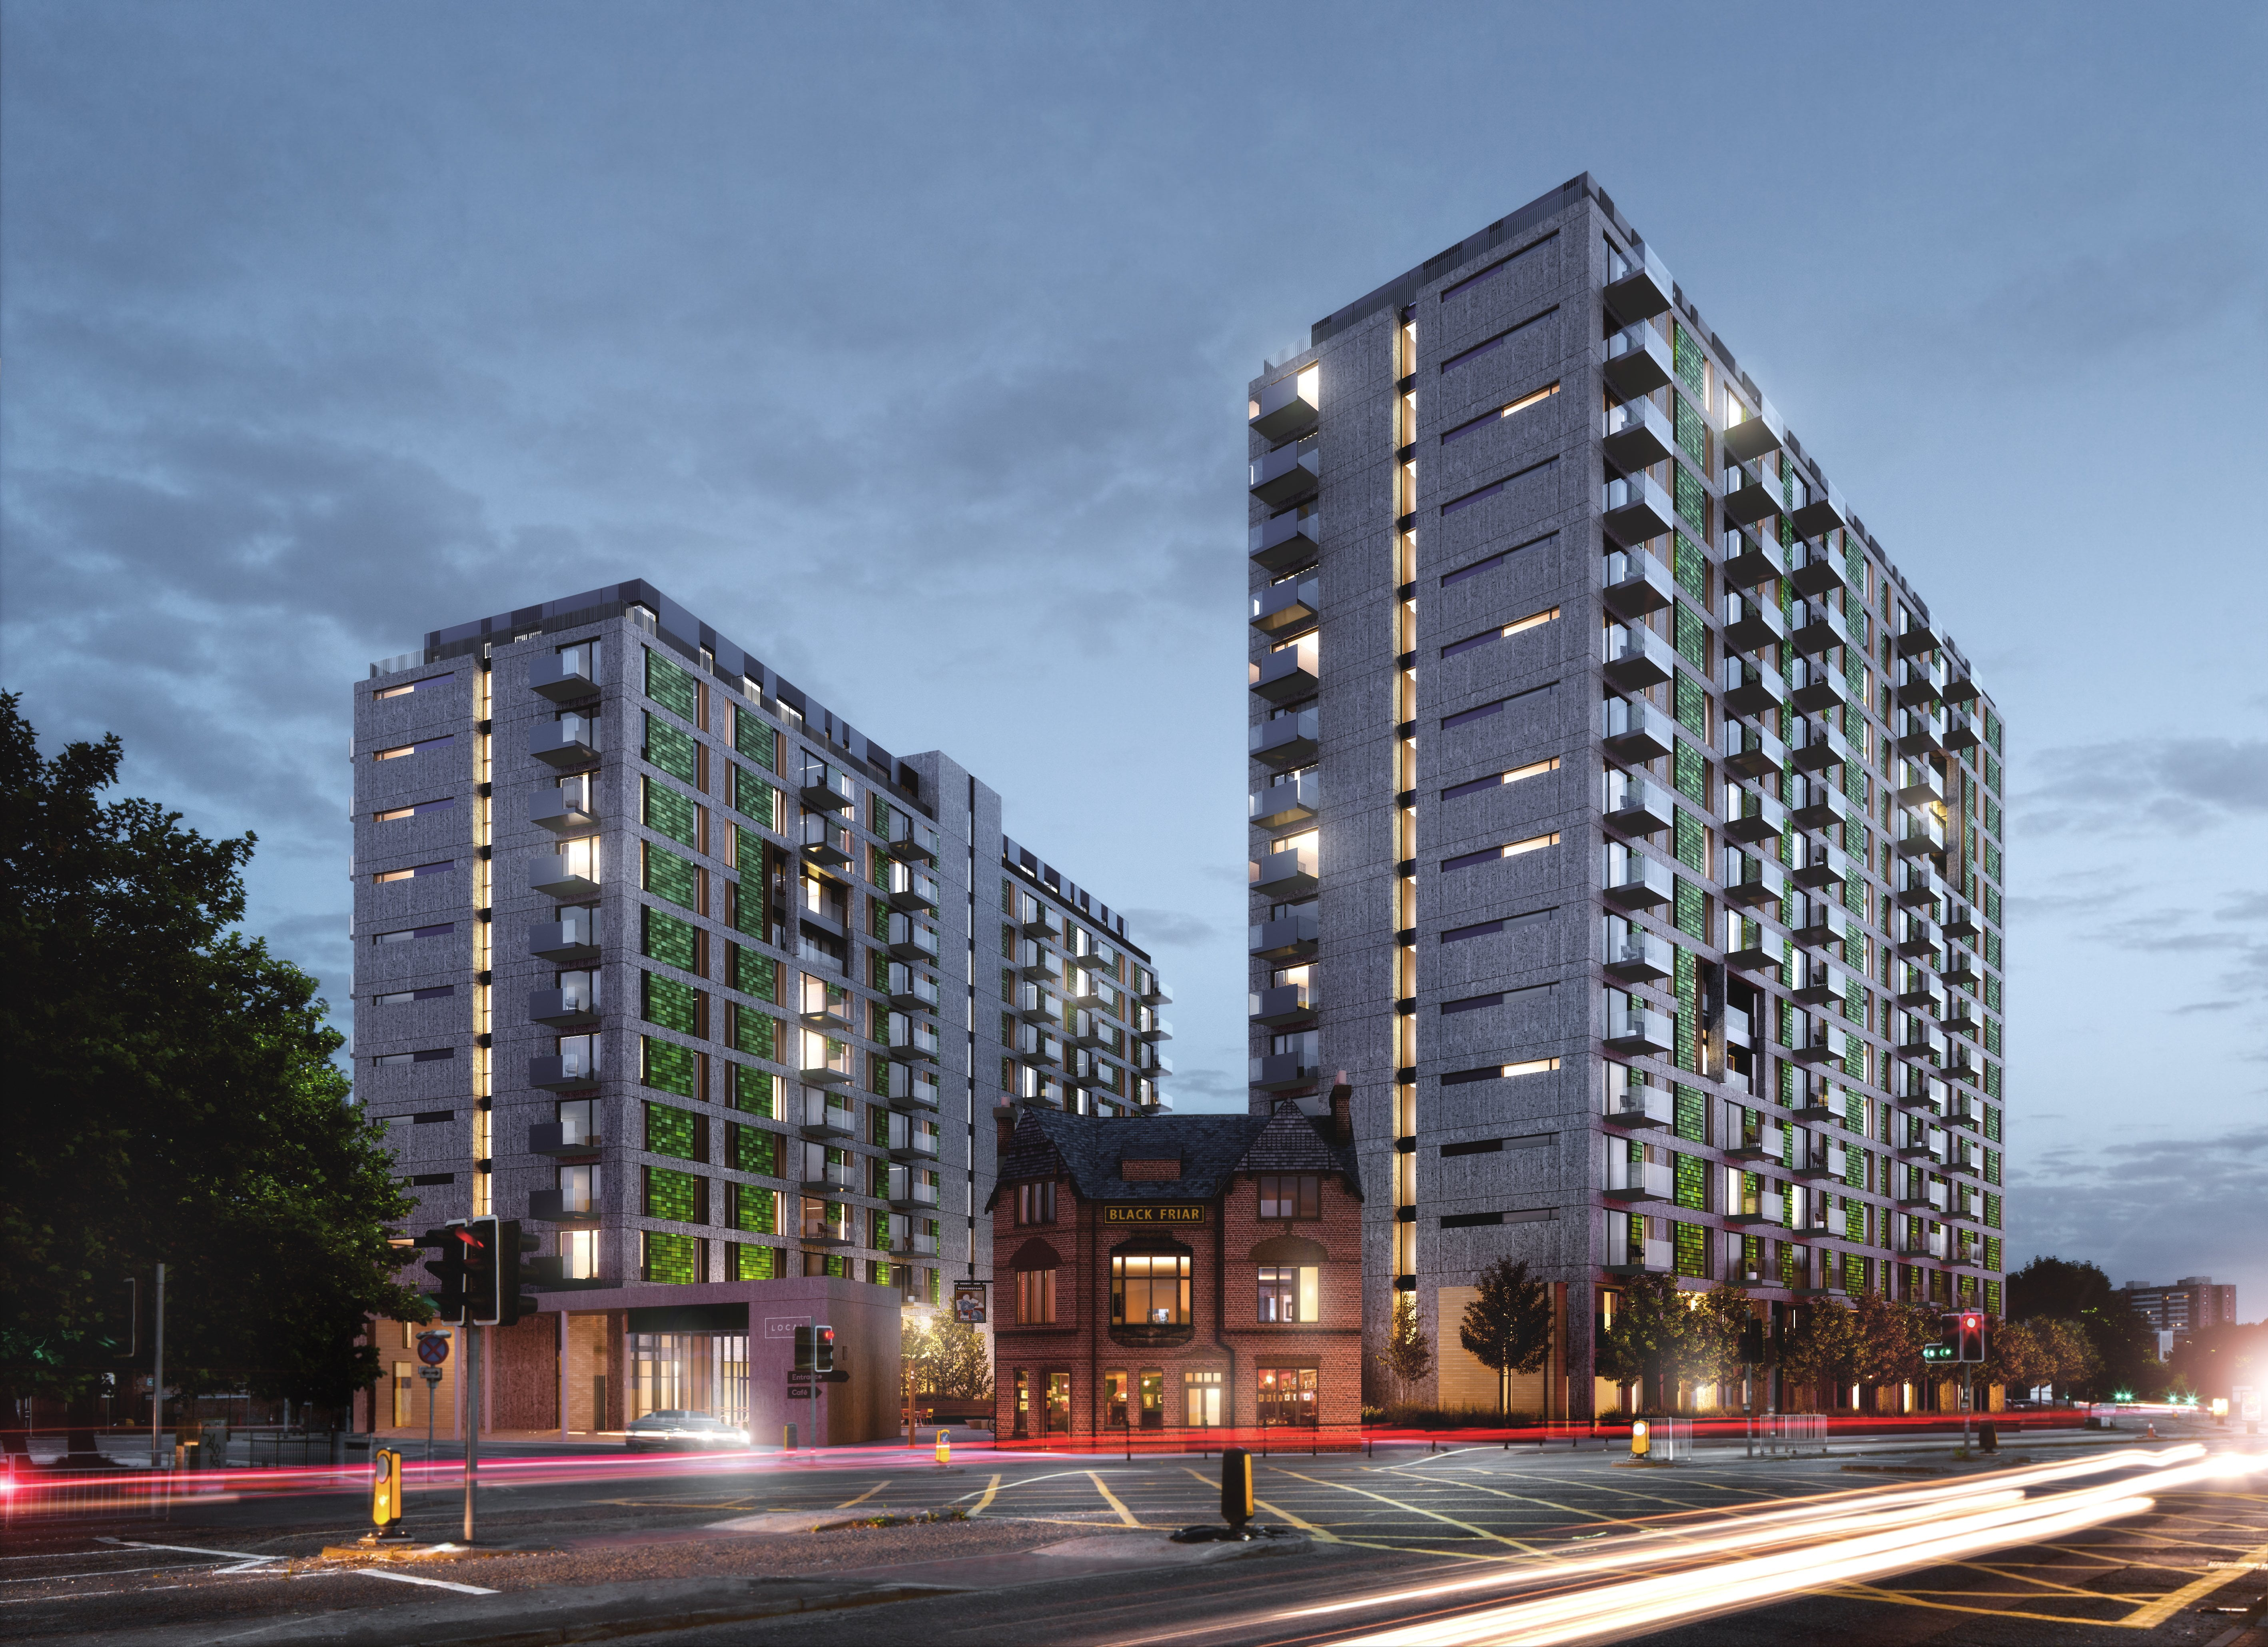 Exterior of the Local Blackfriars Development in Manchester